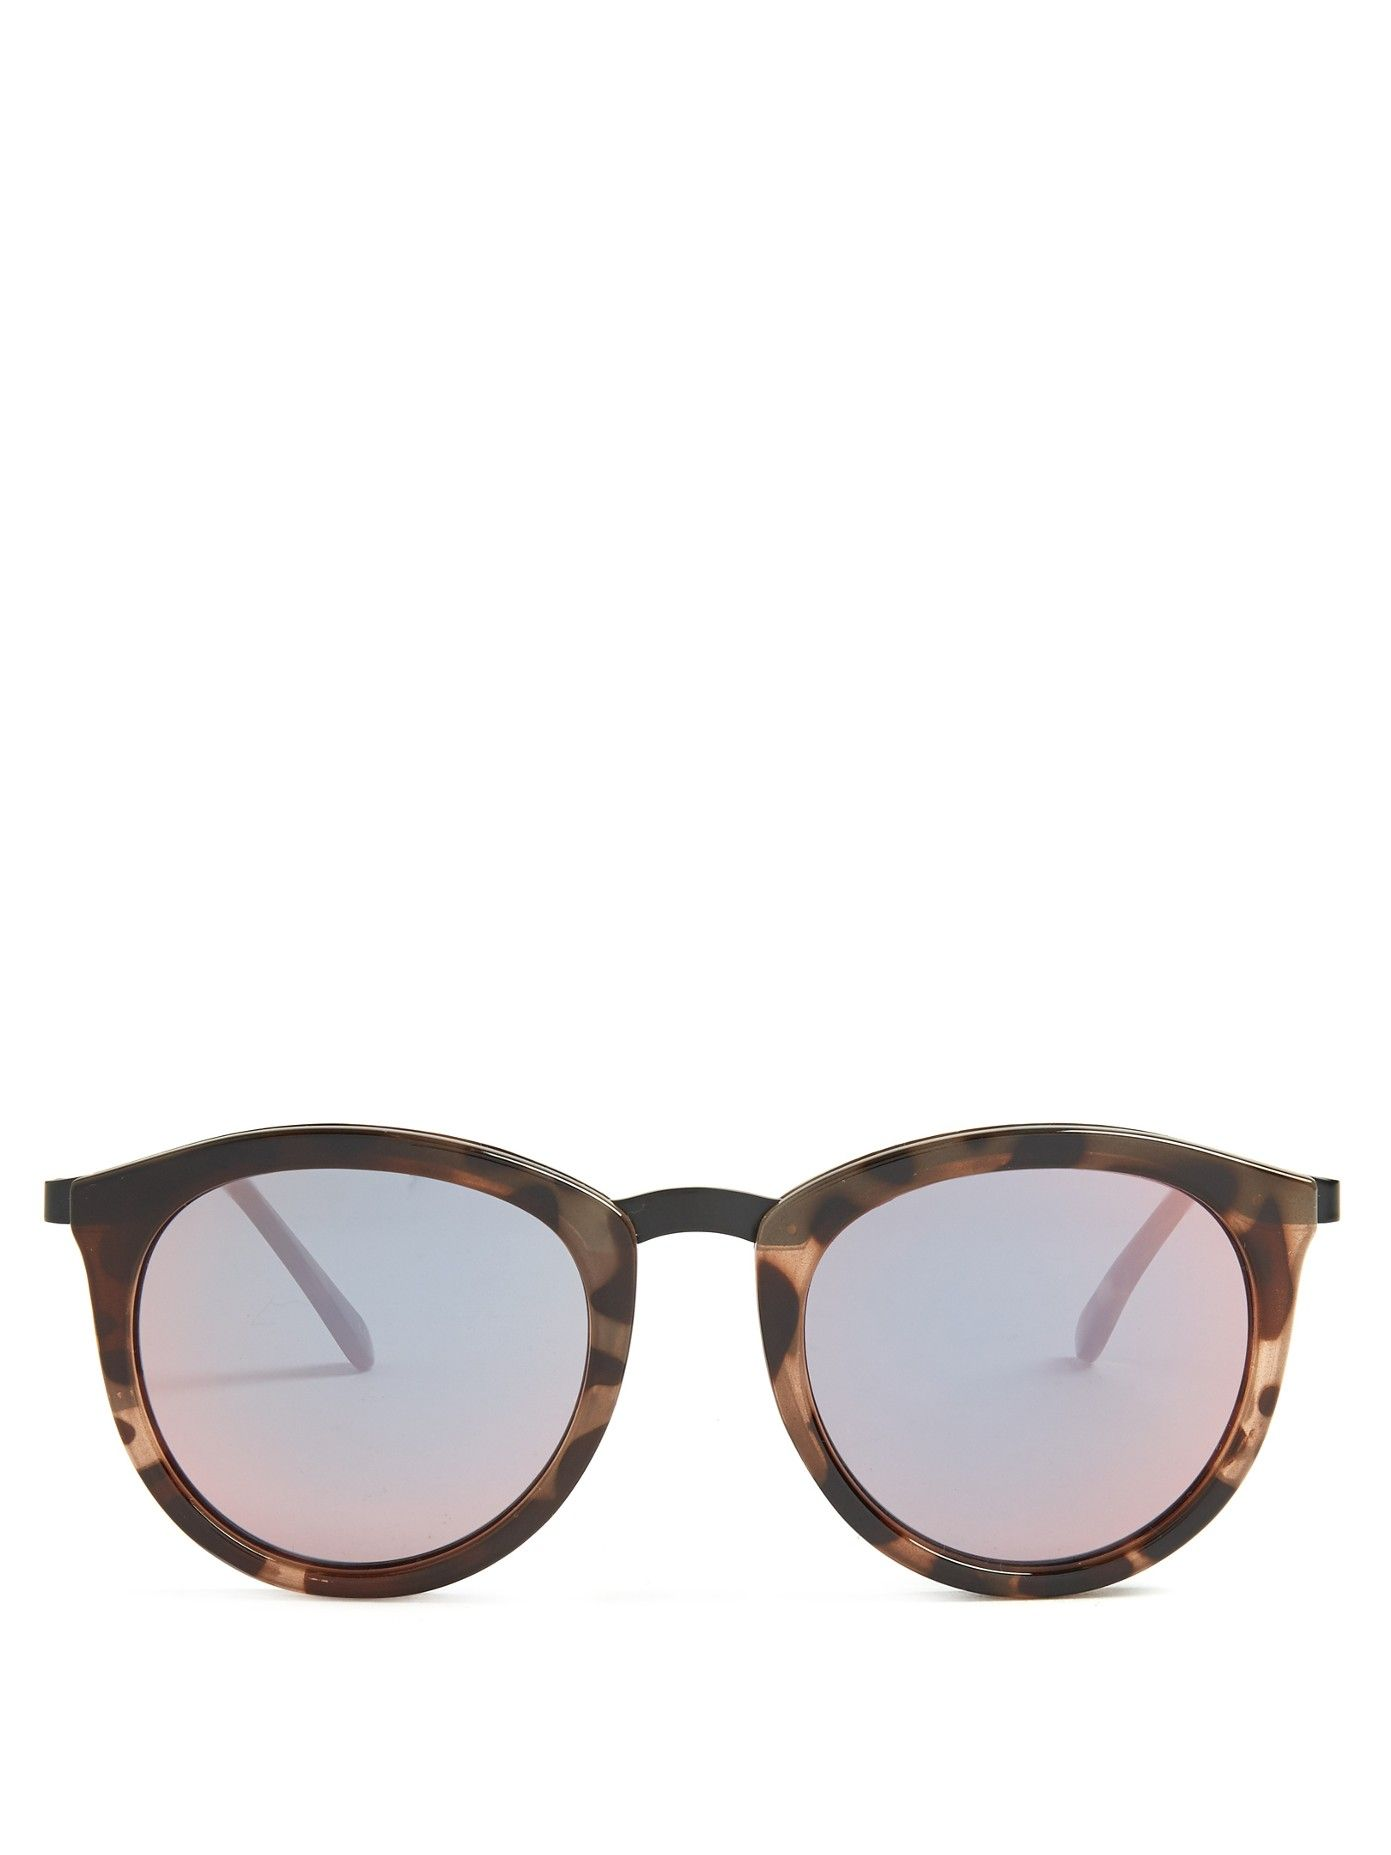 ece9d1fd8a0 Le Specs s tonal-brown tortoiseshell acetate No Smirking sunglasses have  slender rounded frames that feel ultra contemporary. They re finished with  cool ...